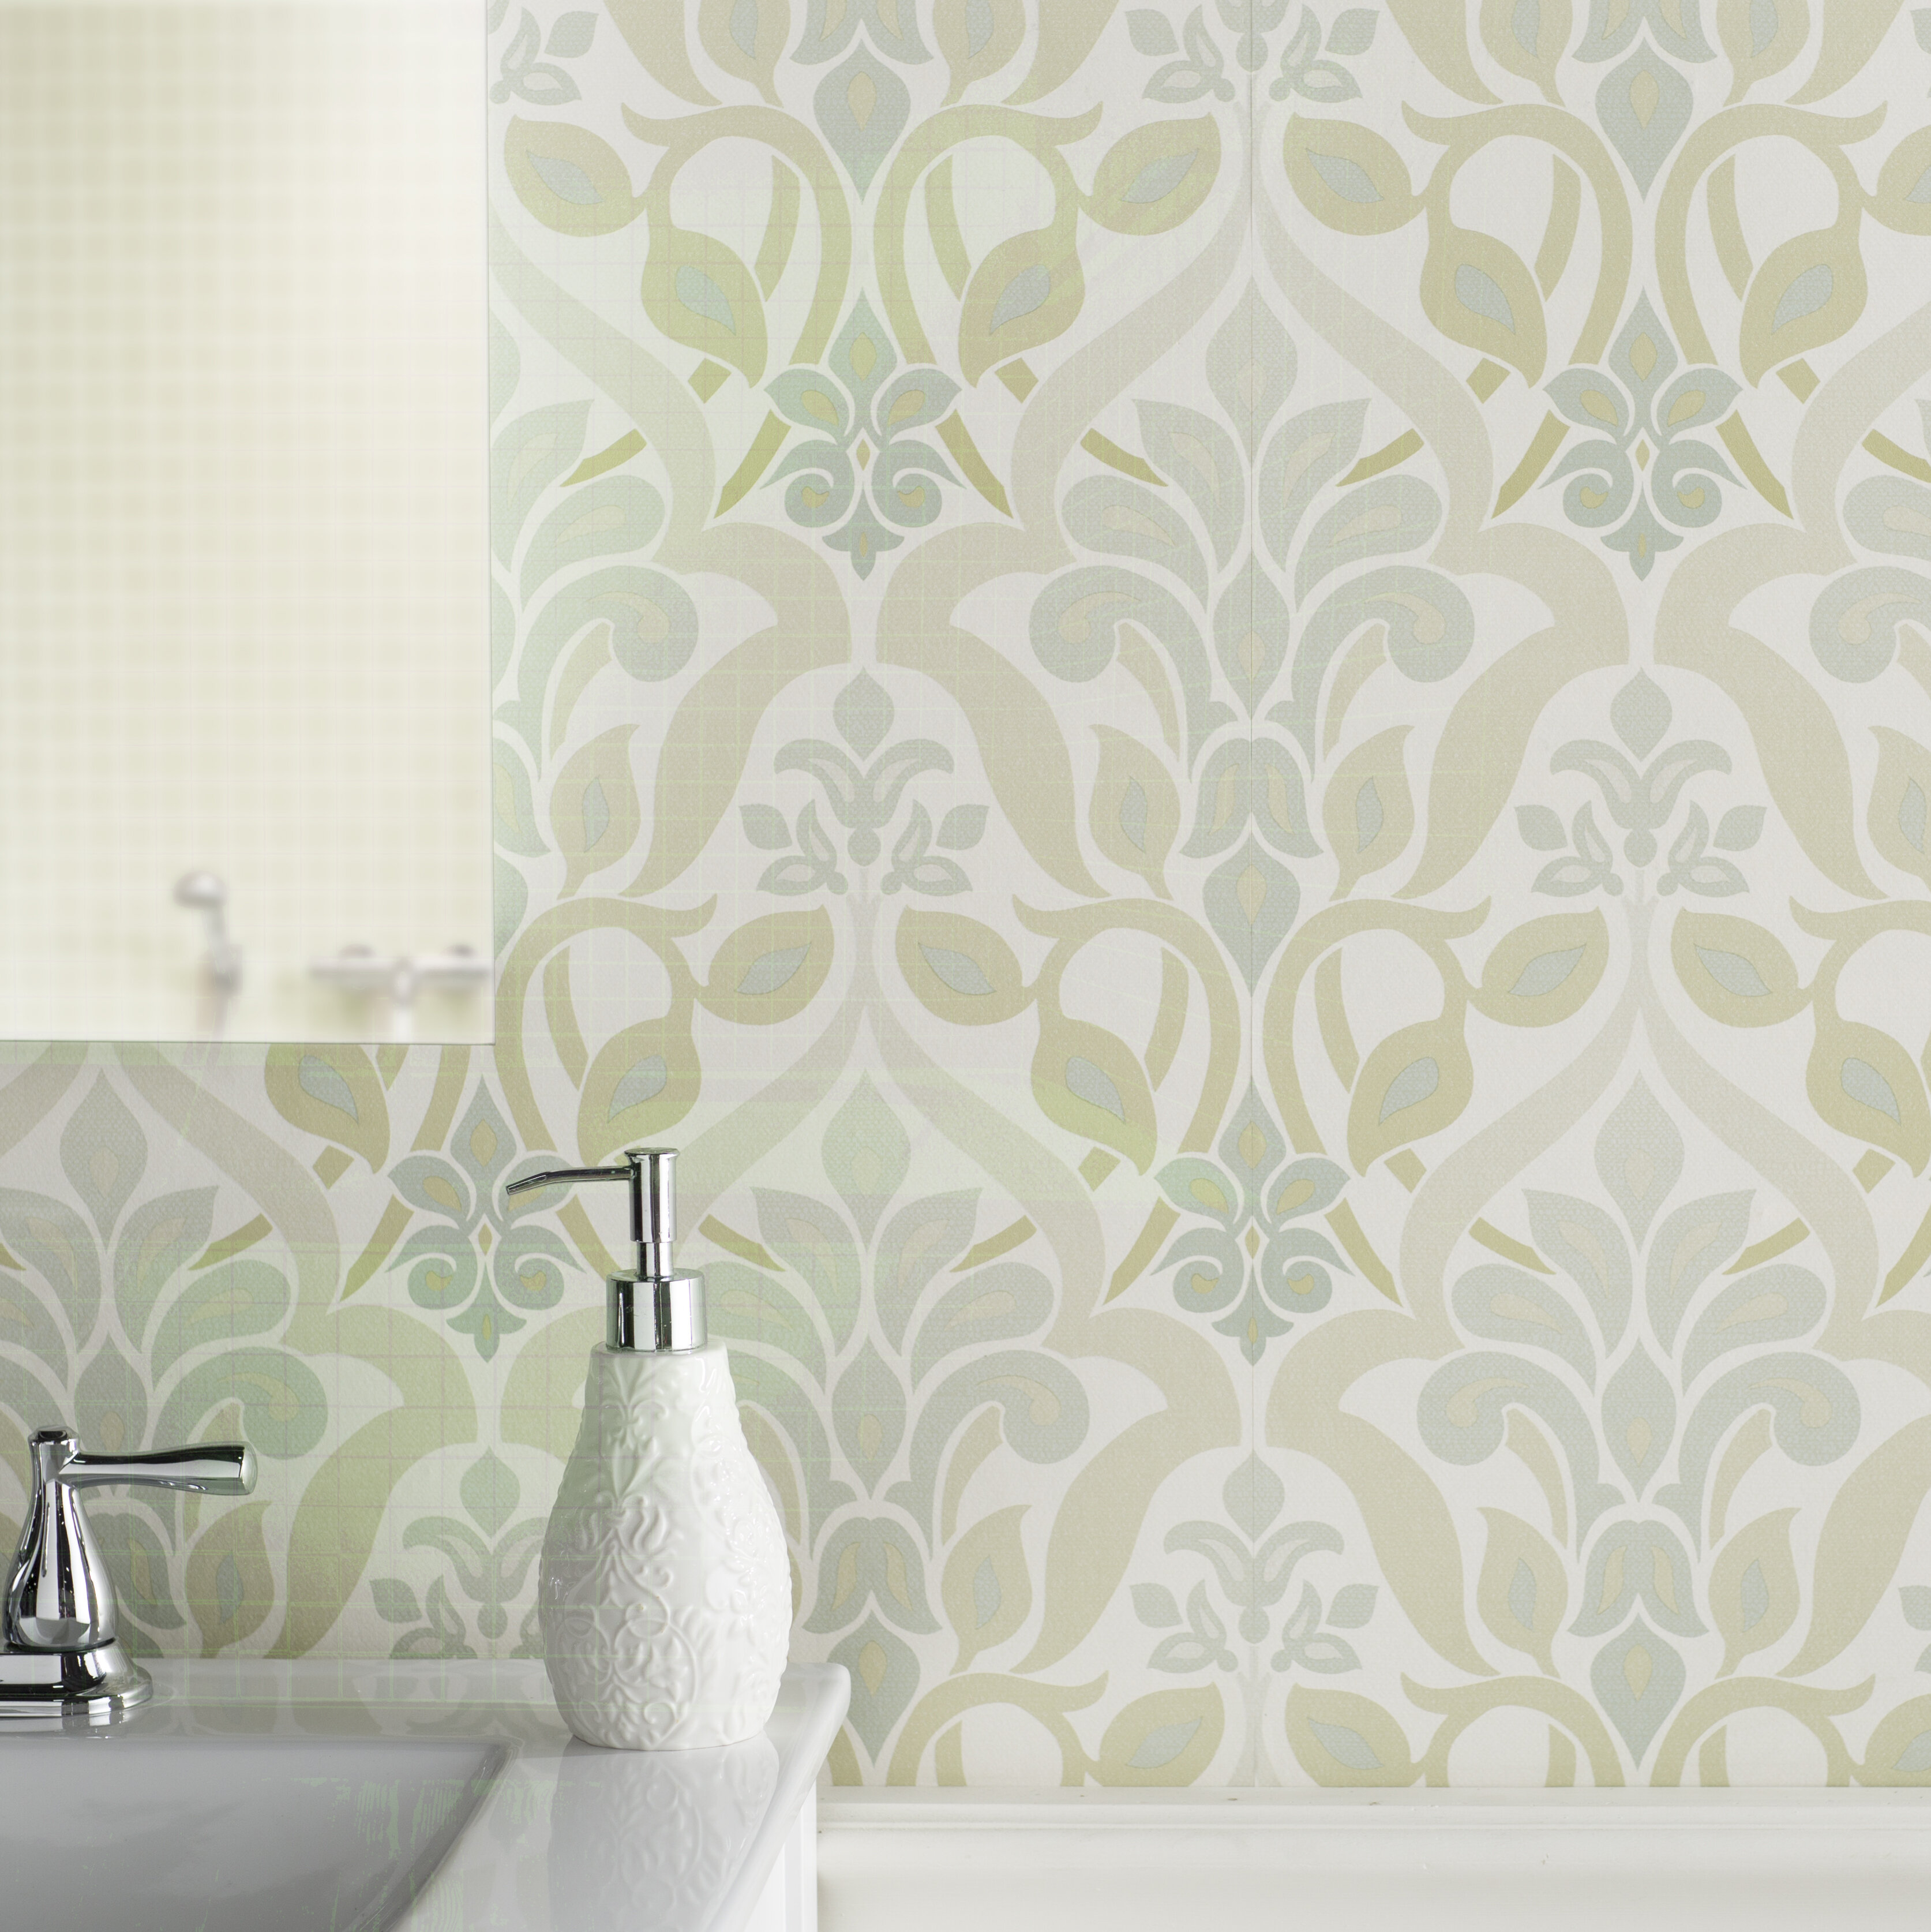 """Brewster Home Fashions Simple Space II 33' x 20.5"""" Fusion Ombre Wallpaper Roll & Reviews 